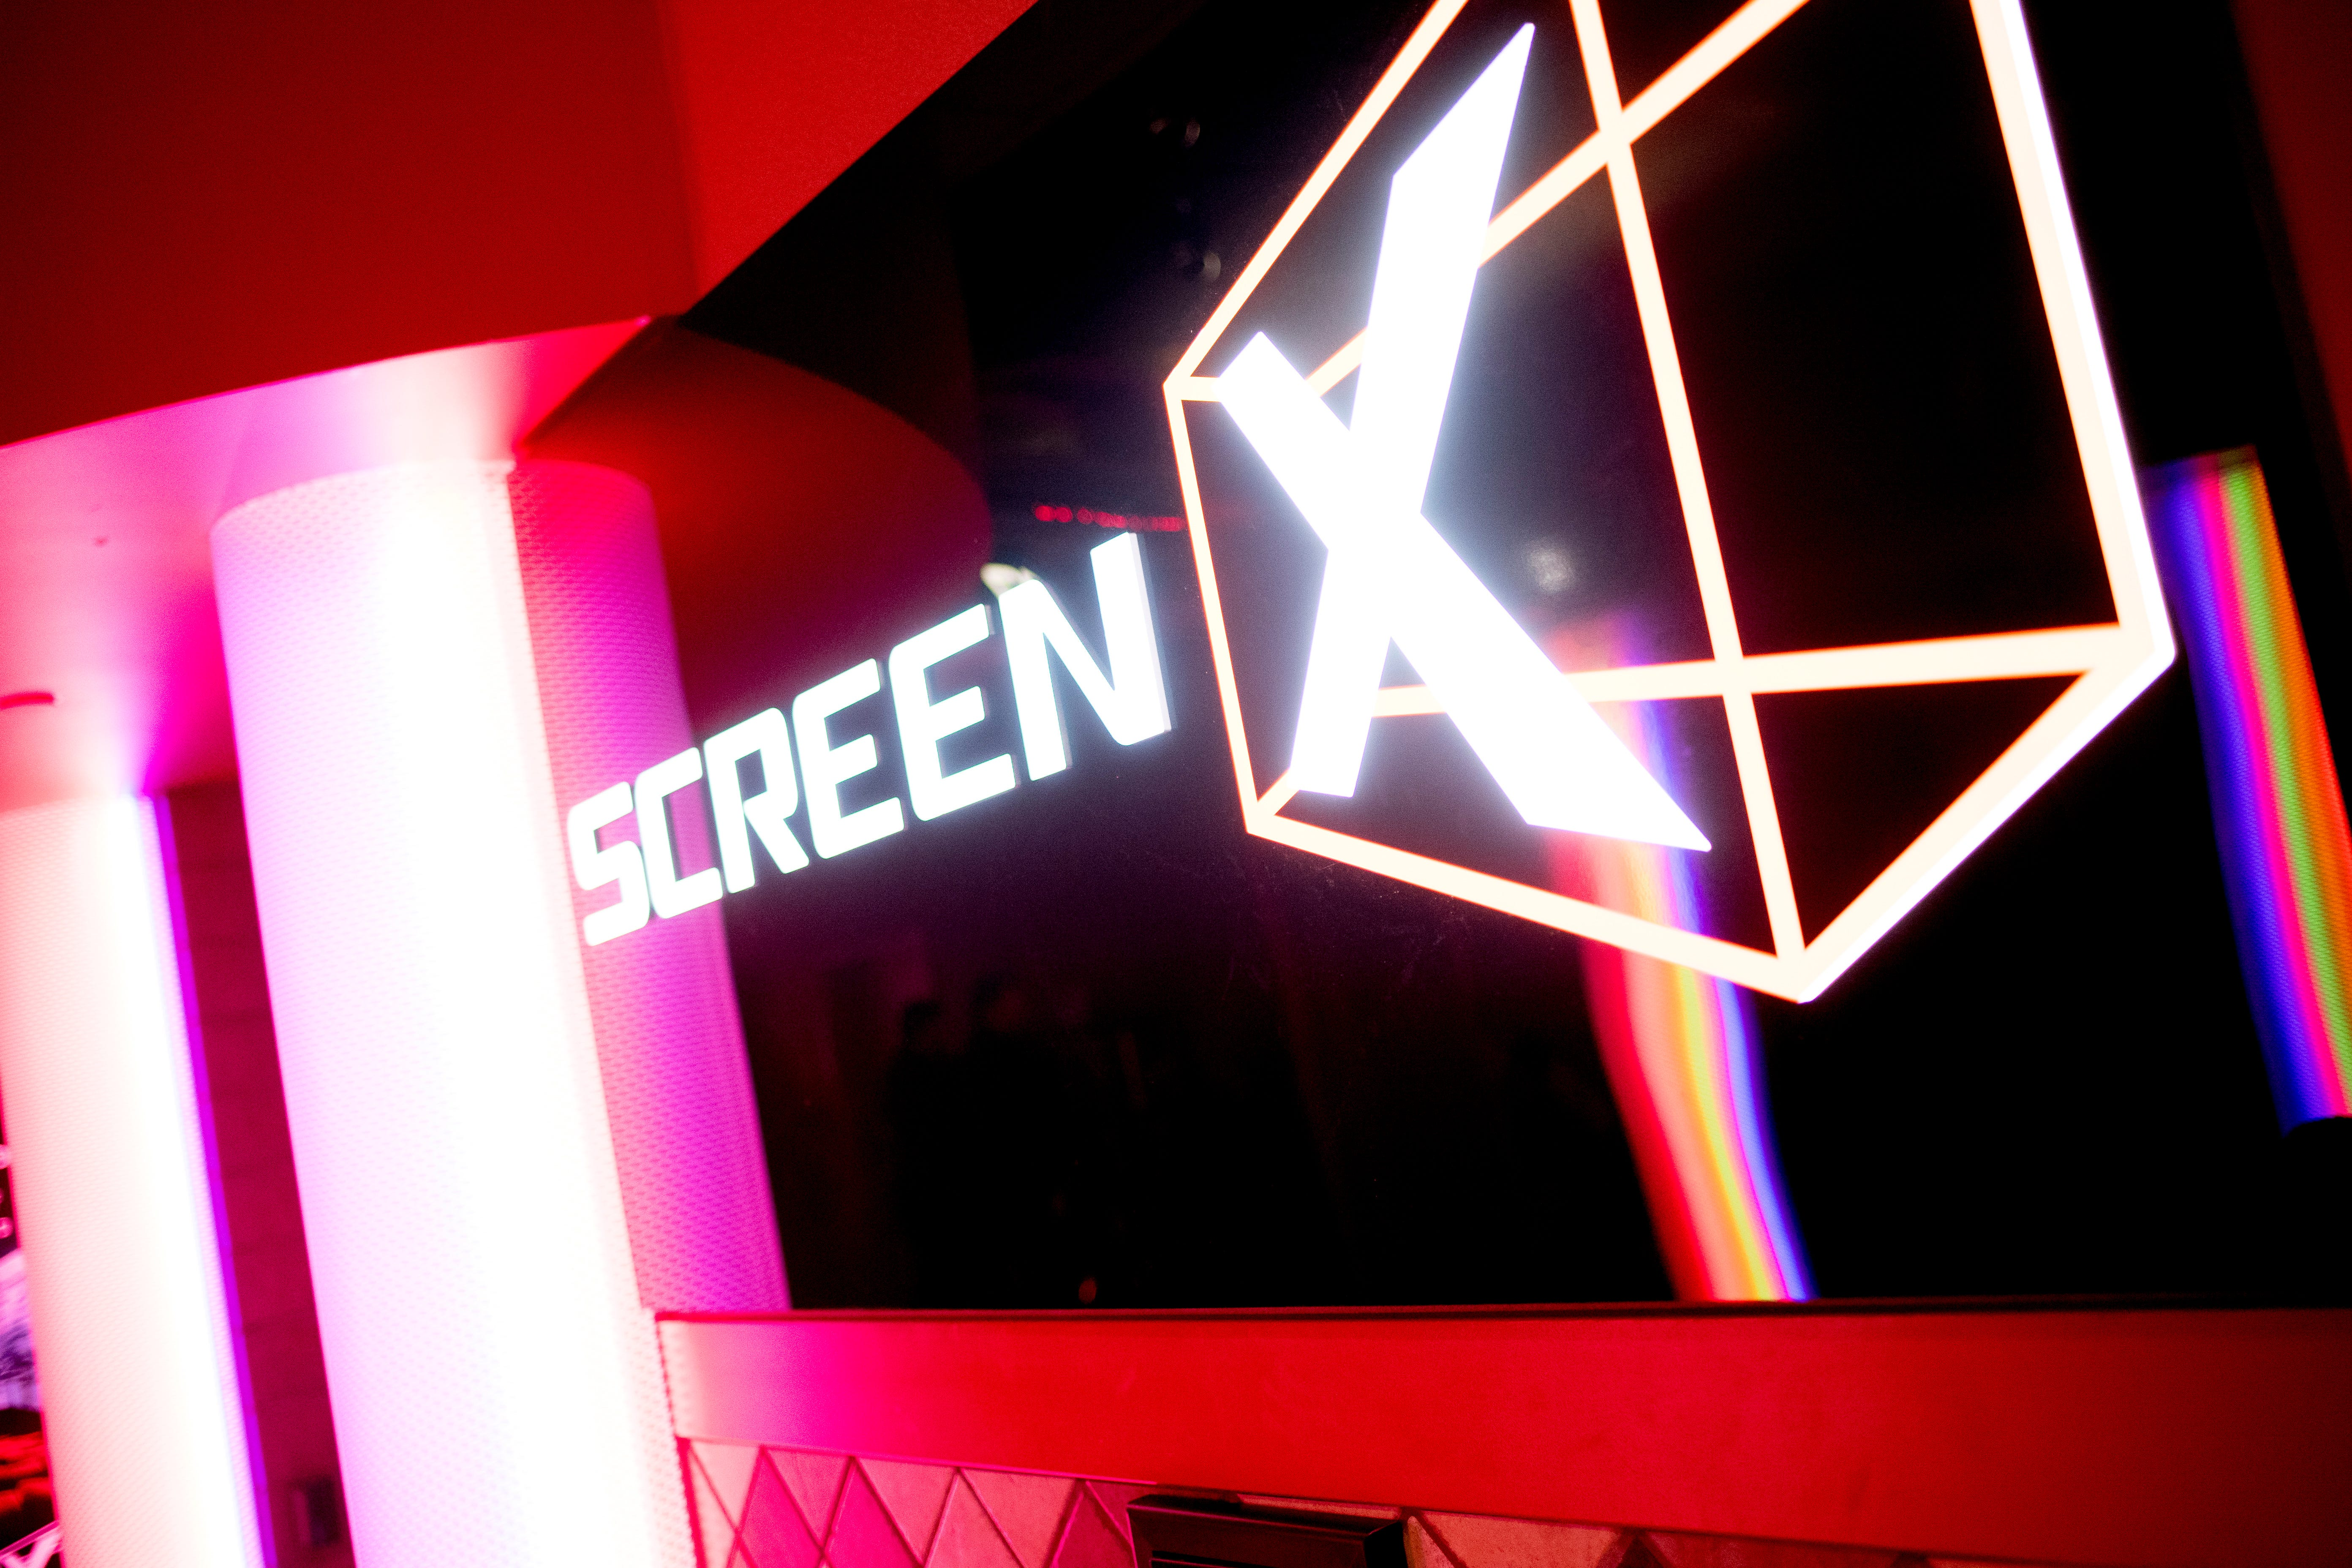 Avid Moviegoer Here Are Details On Regal S New Unlimited Movie Plan